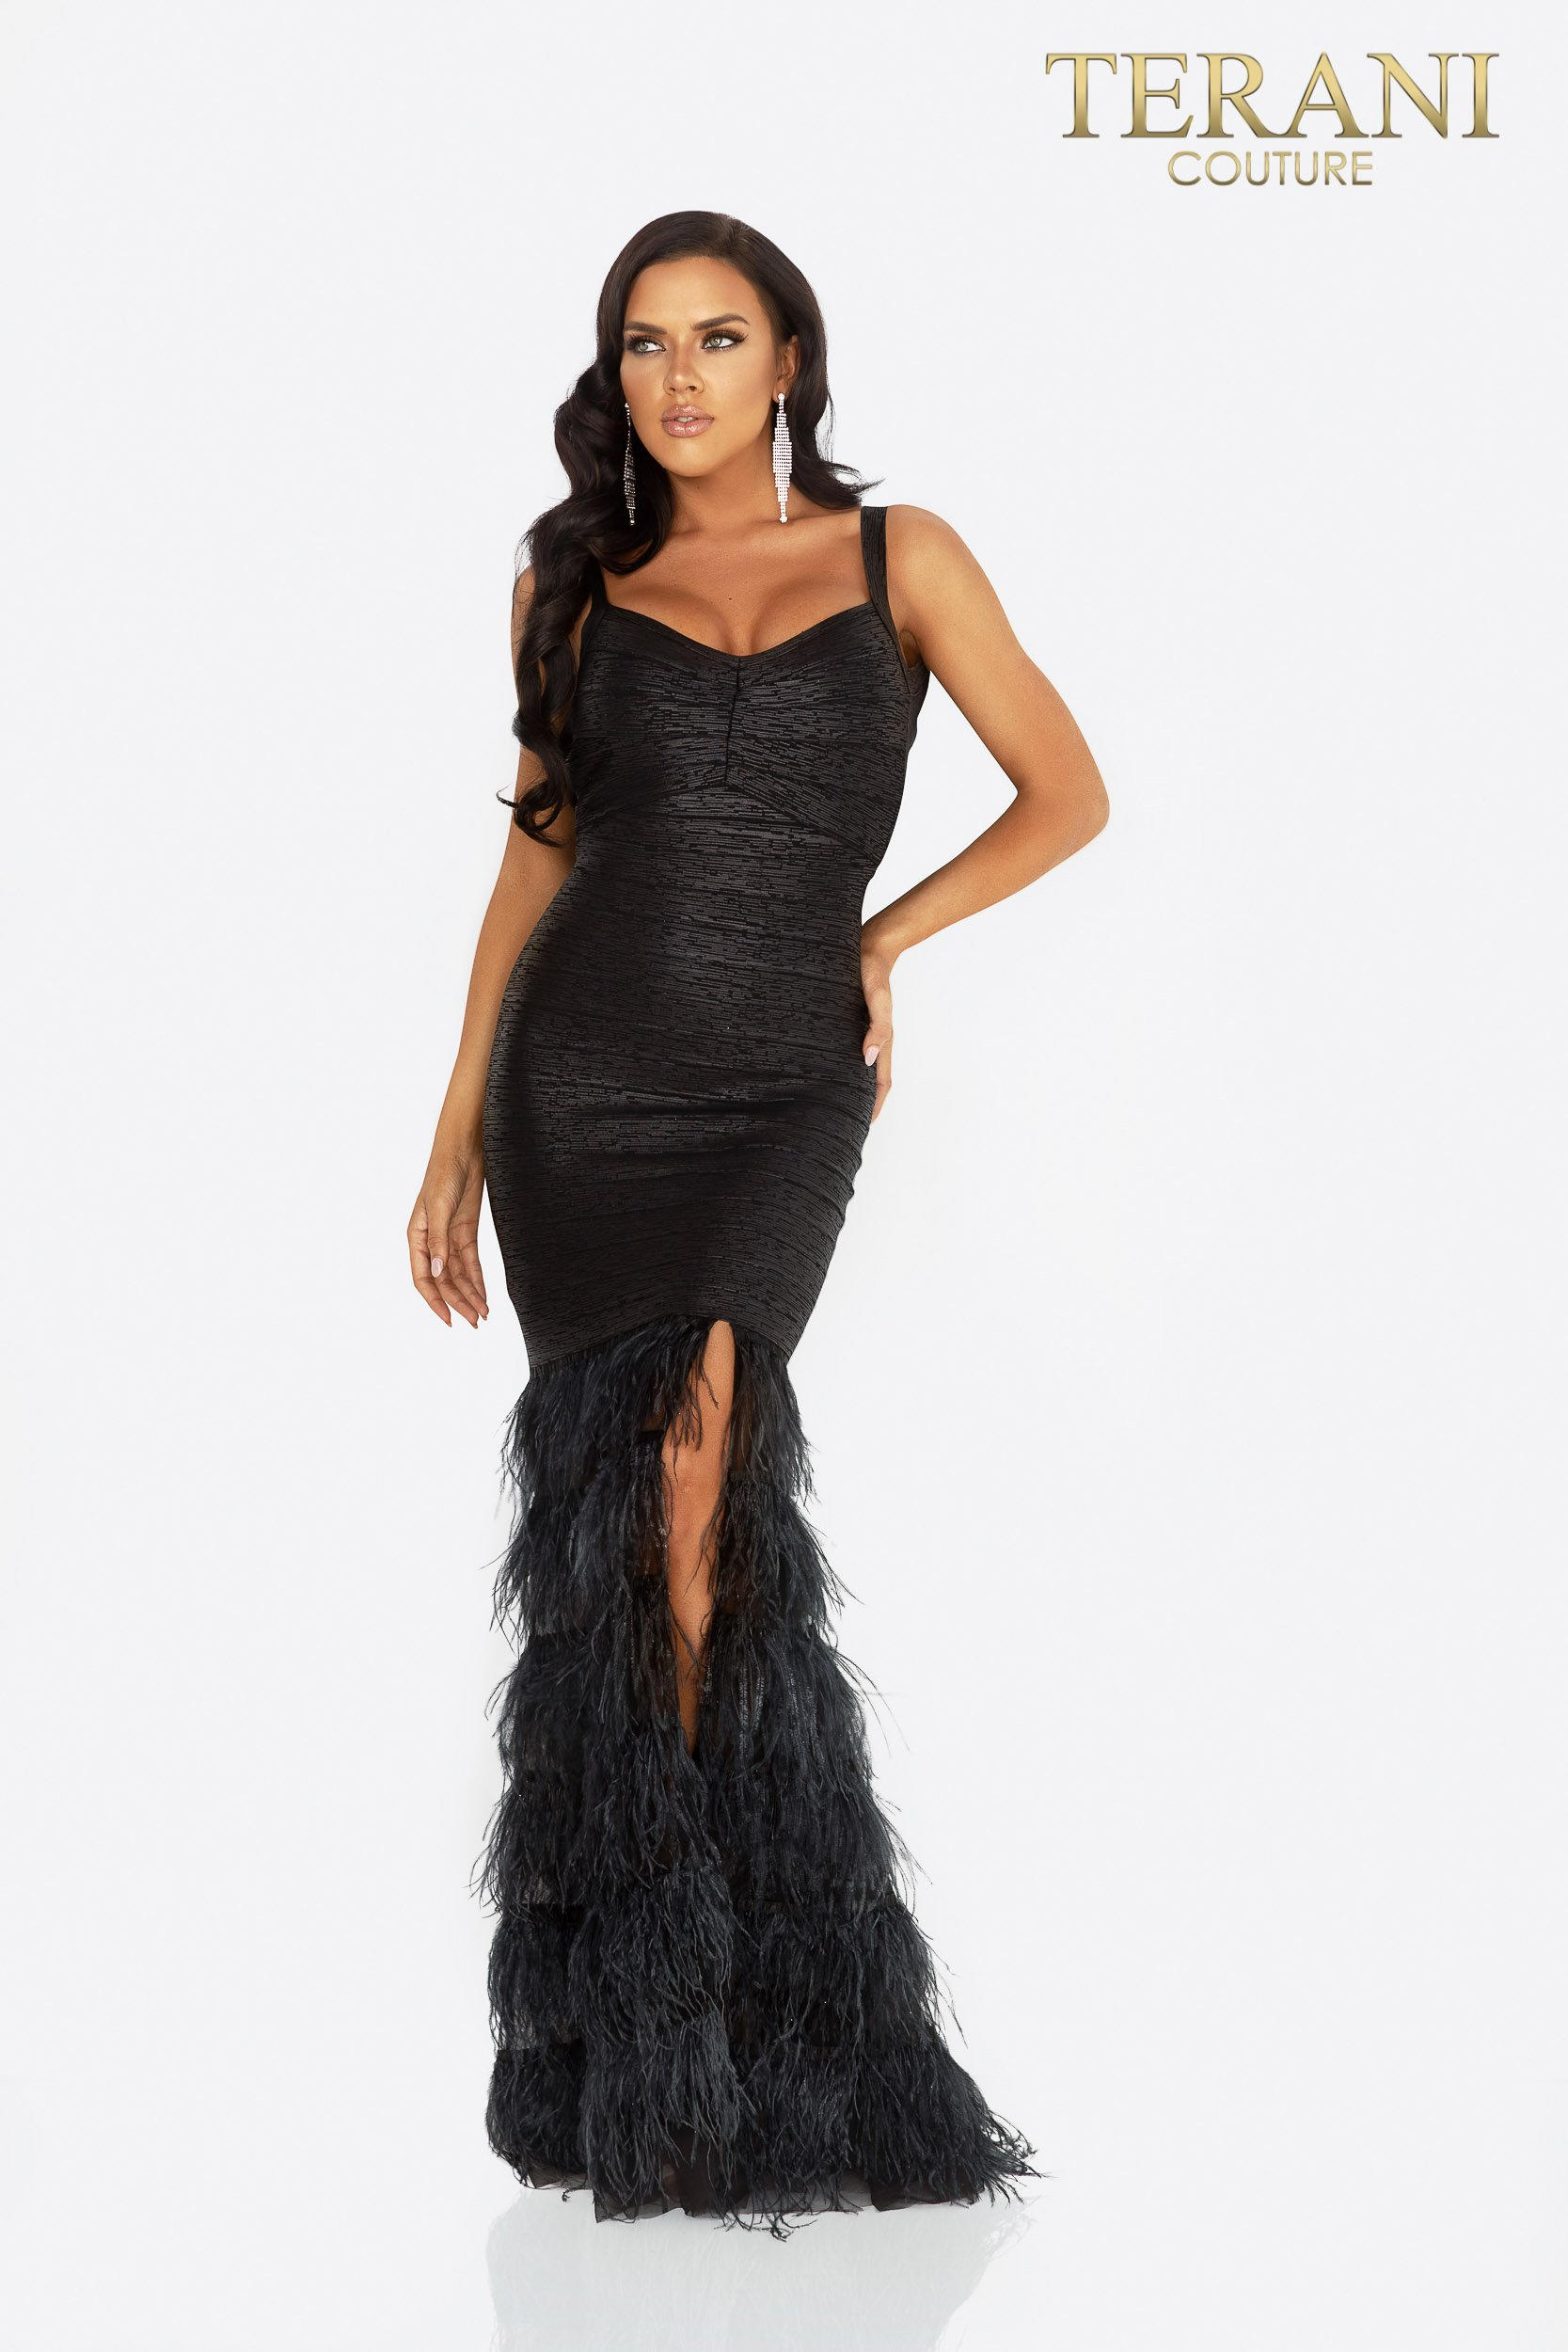 Style: Fitted bandage prom dress with feathers – 2011P1102